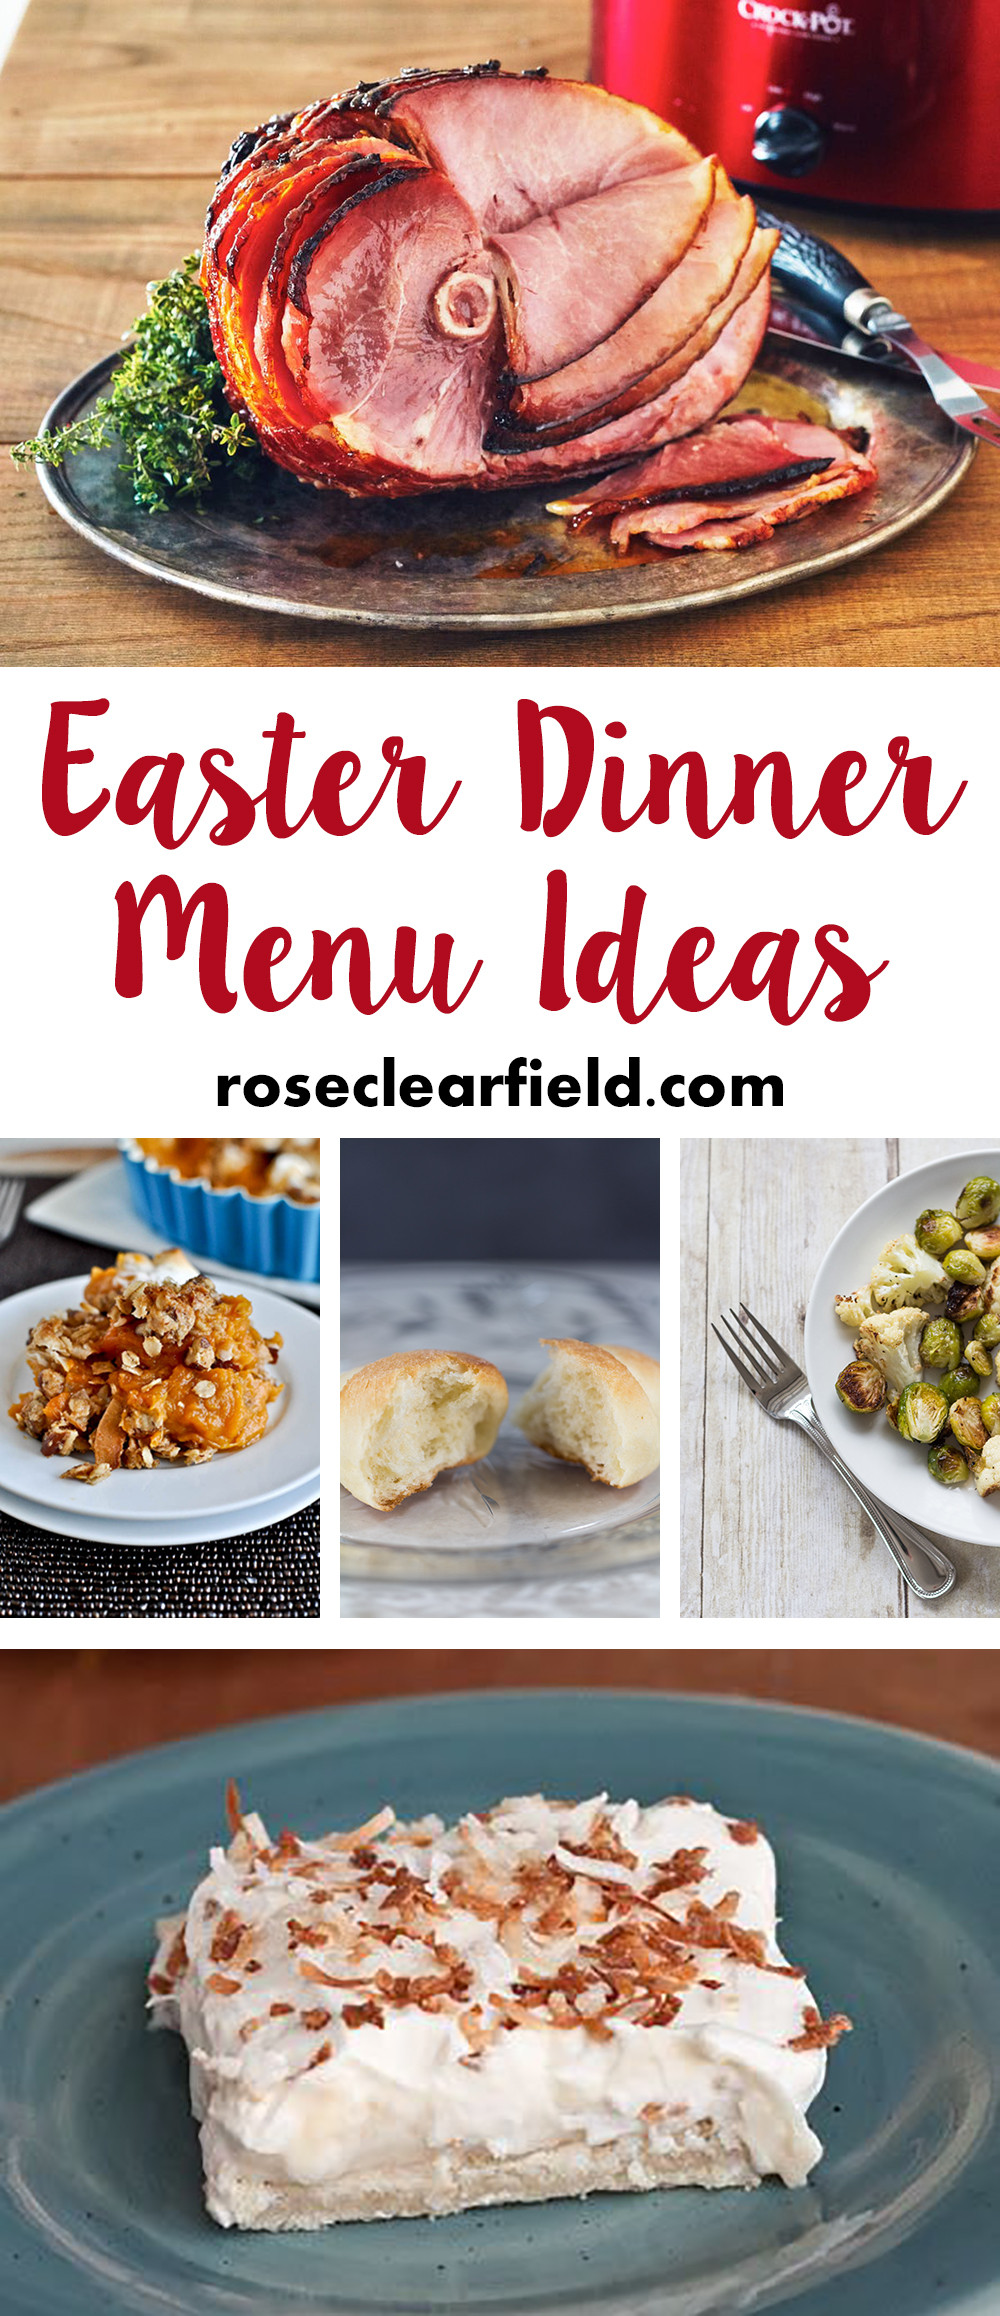 Suggestions For Easter Dinner Menu  Easter Dinner Menu Ideas • Rose Clearfield